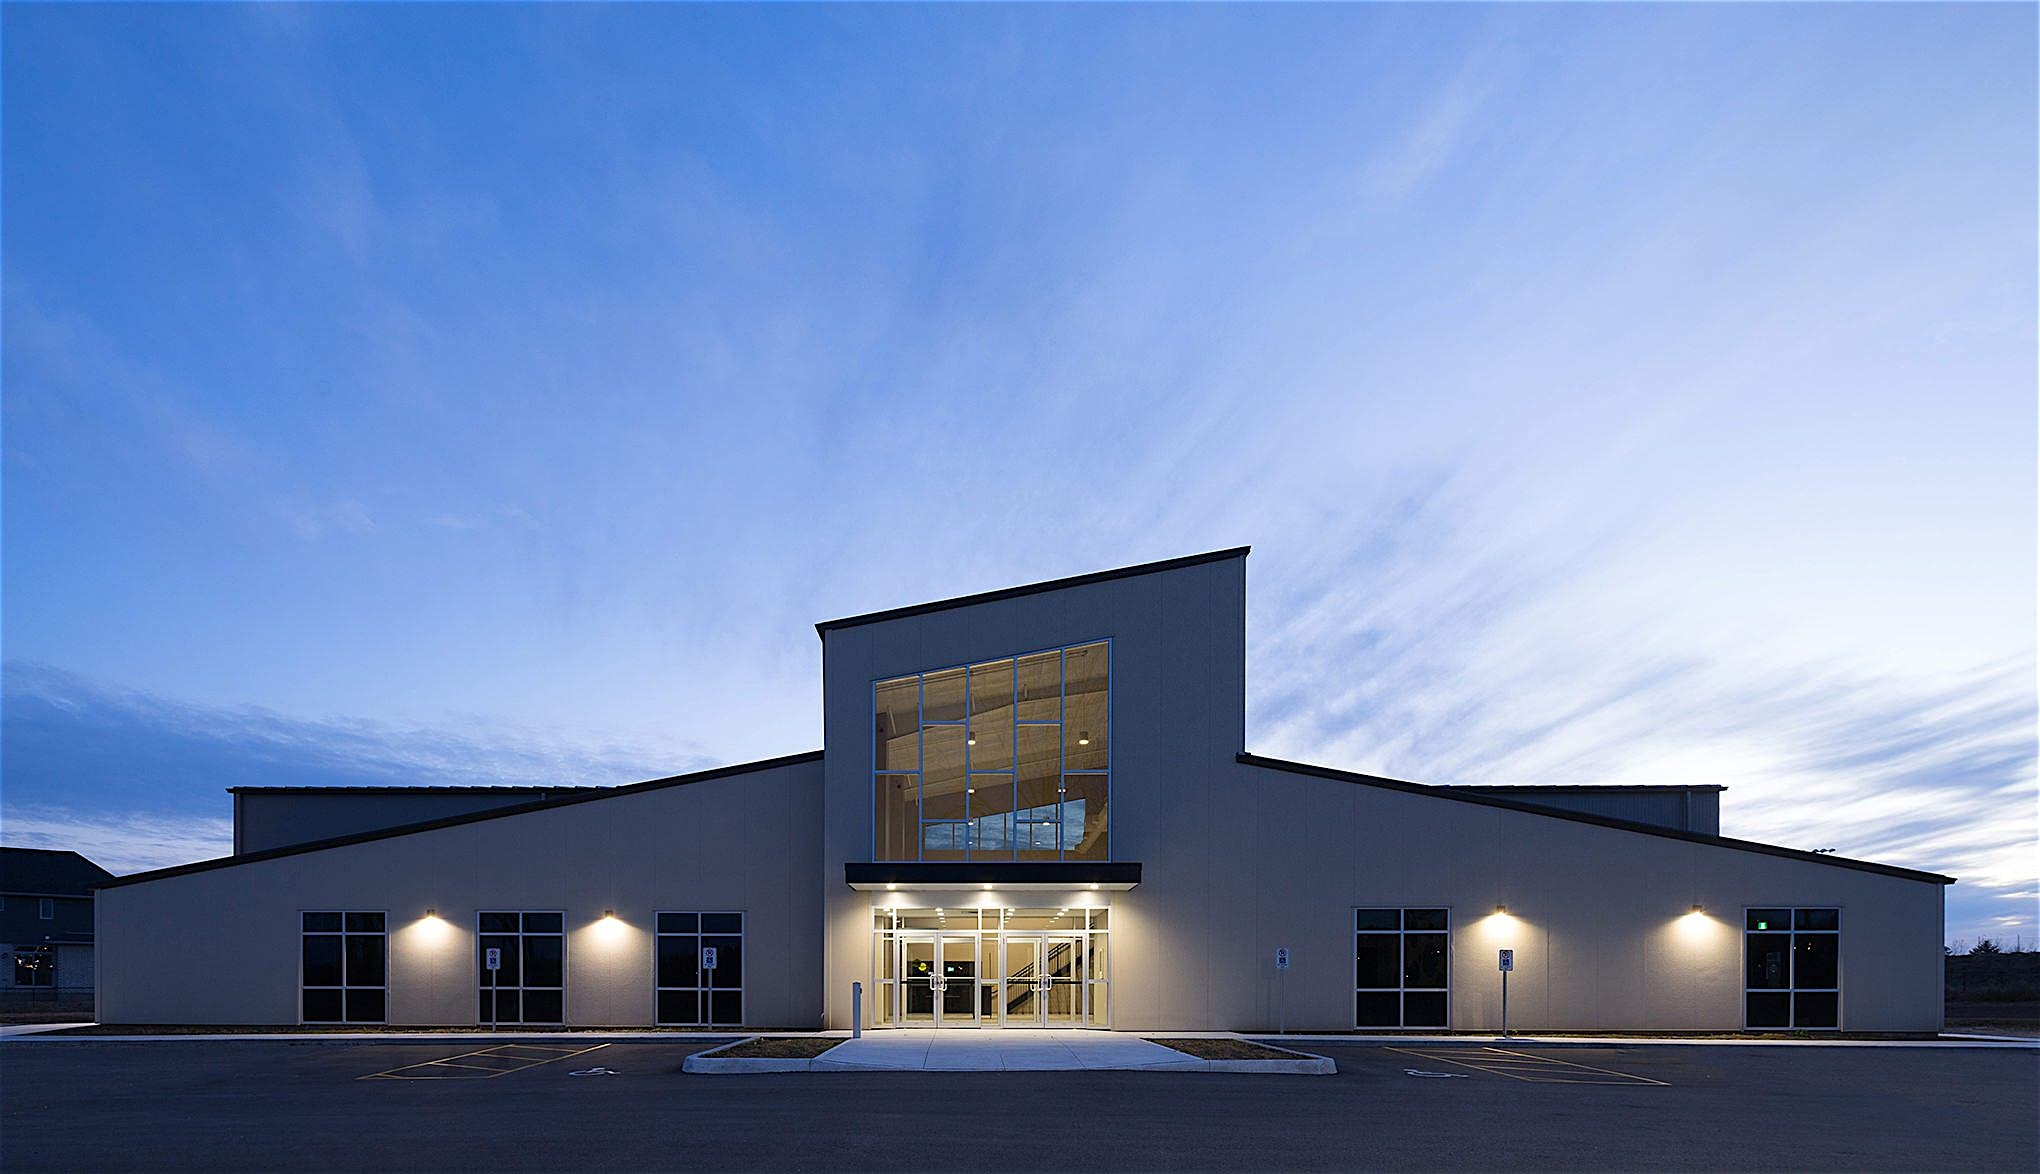 Bethel Pentecostal Church by Grassmere Construction LTD. Architectural Twilight Building Photography by Scott Webb